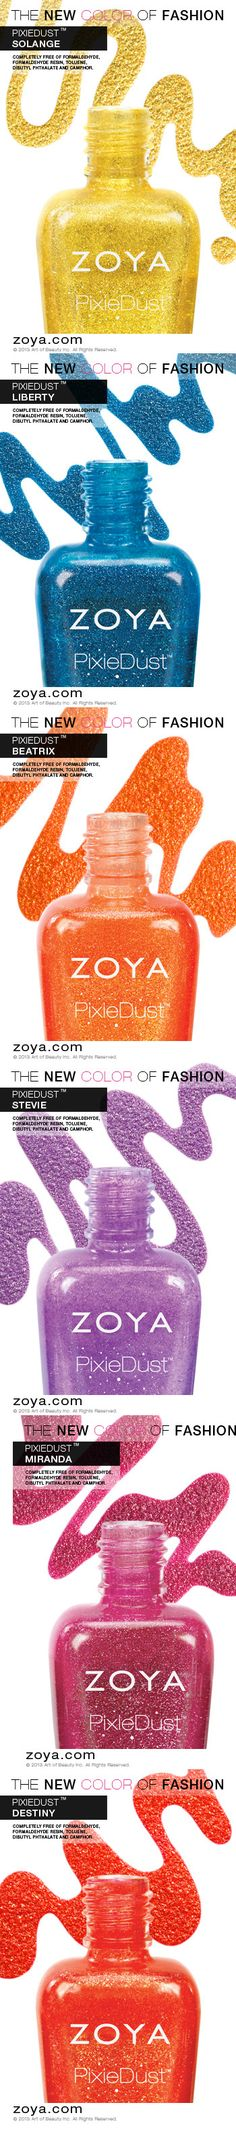 The Zoya PixieDust Collection - Summer 2013 Edition